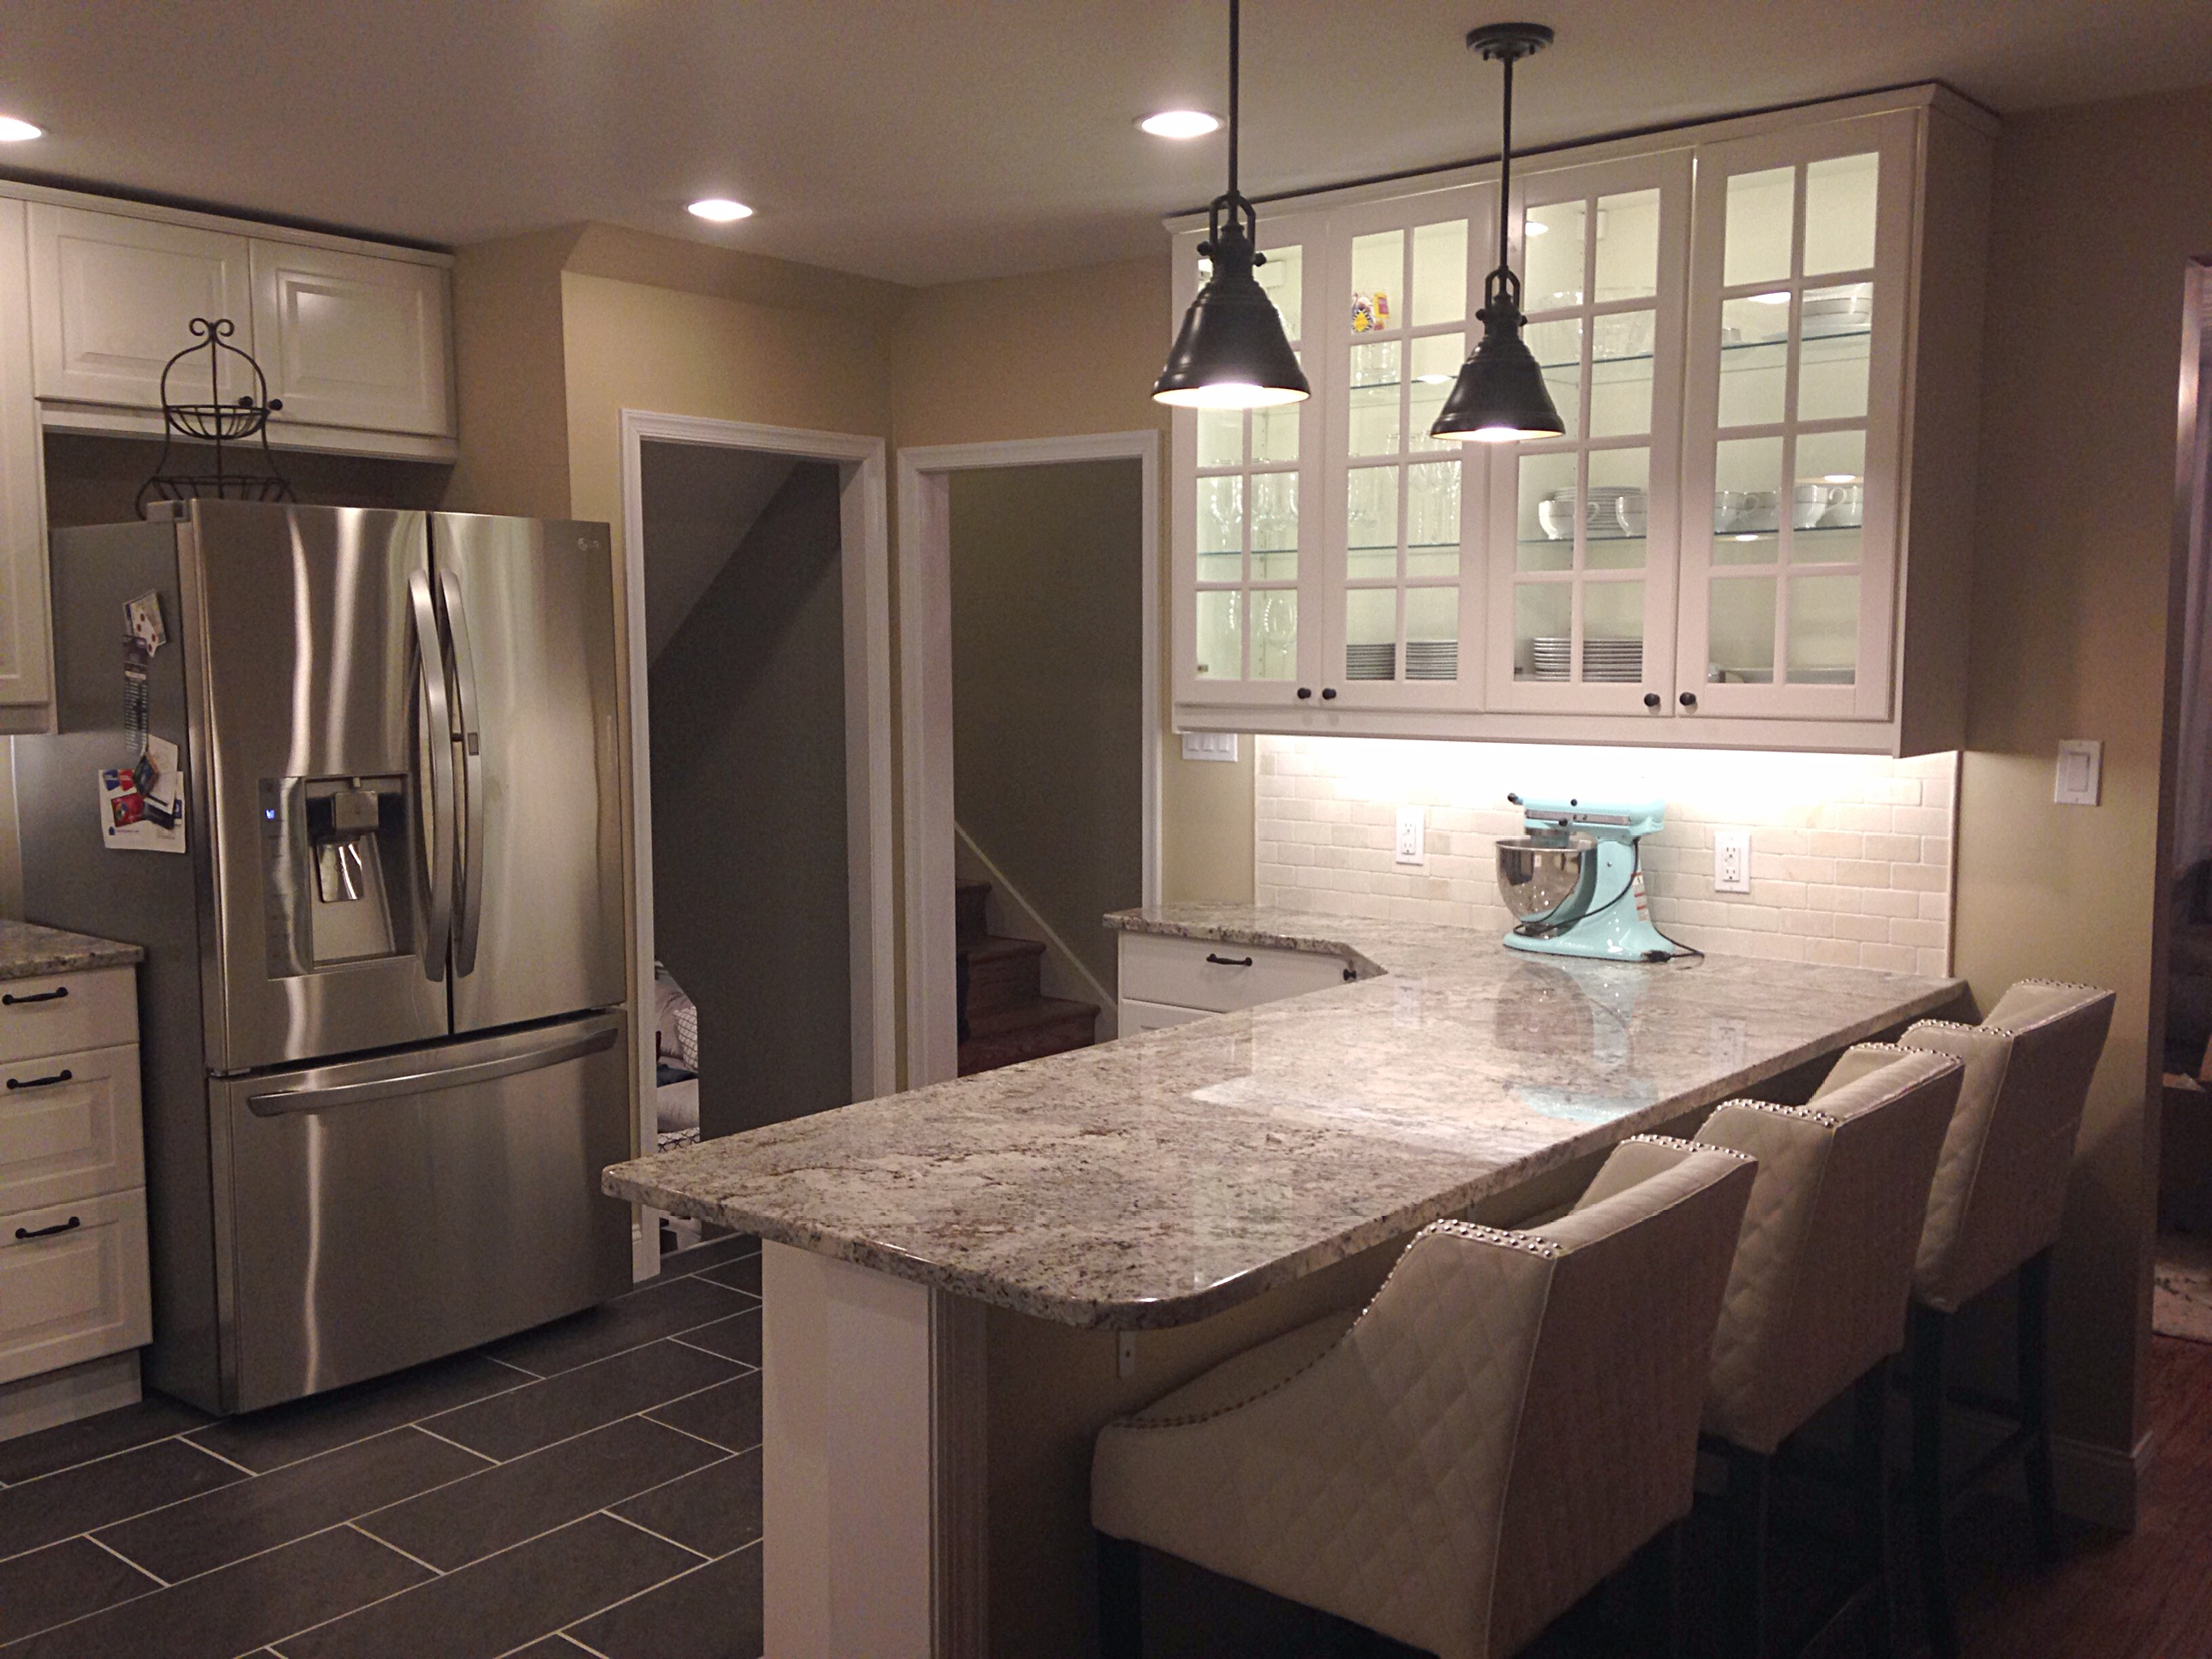 new year new you : kitchen remodel with led lighting